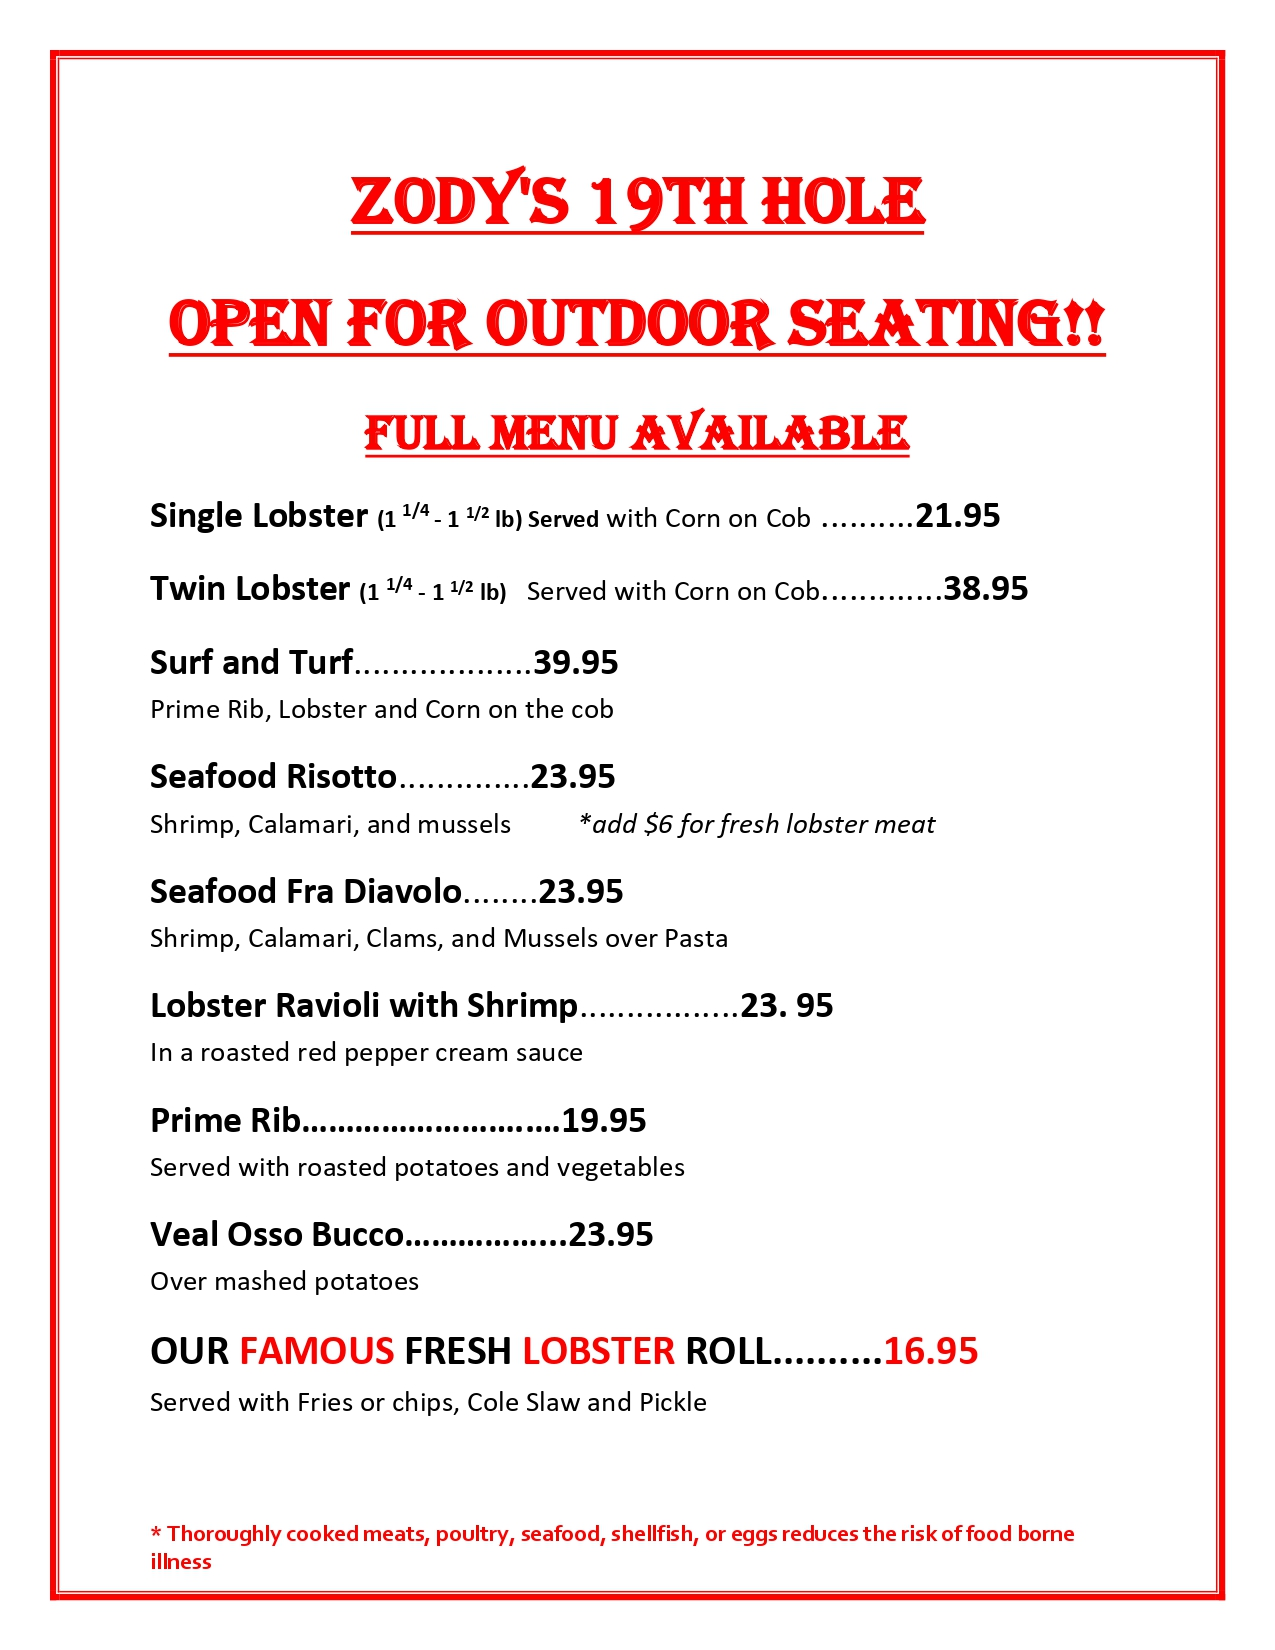 Lobsyer special menu, readable pdf above